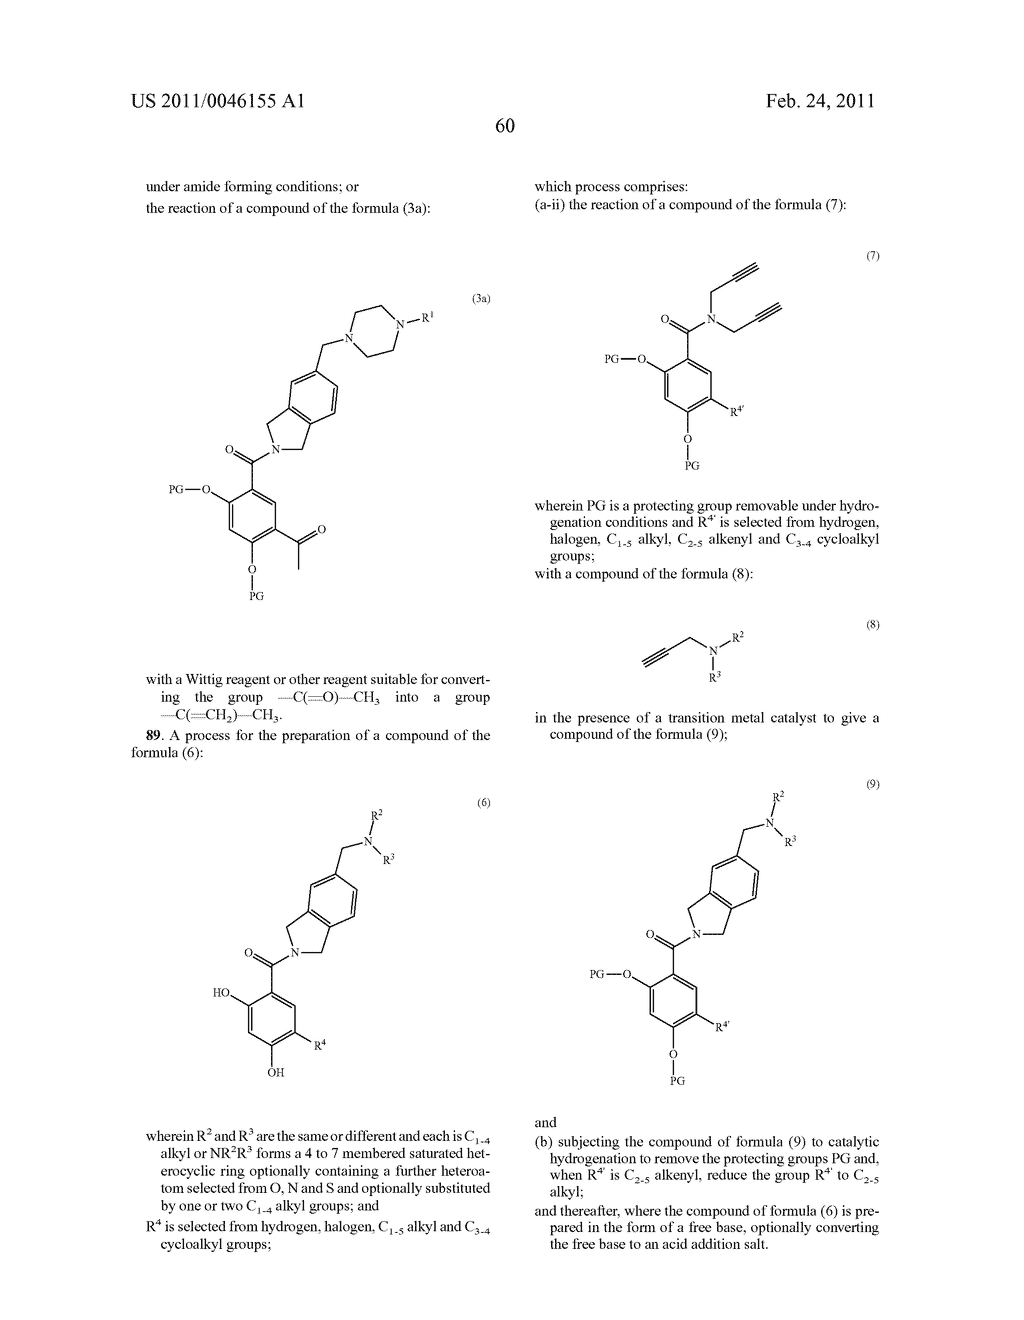 HYDROBENZAMIDE DERIVATIVES AS INHIBITORS OF HSP90 - diagram, schematic, and image 73